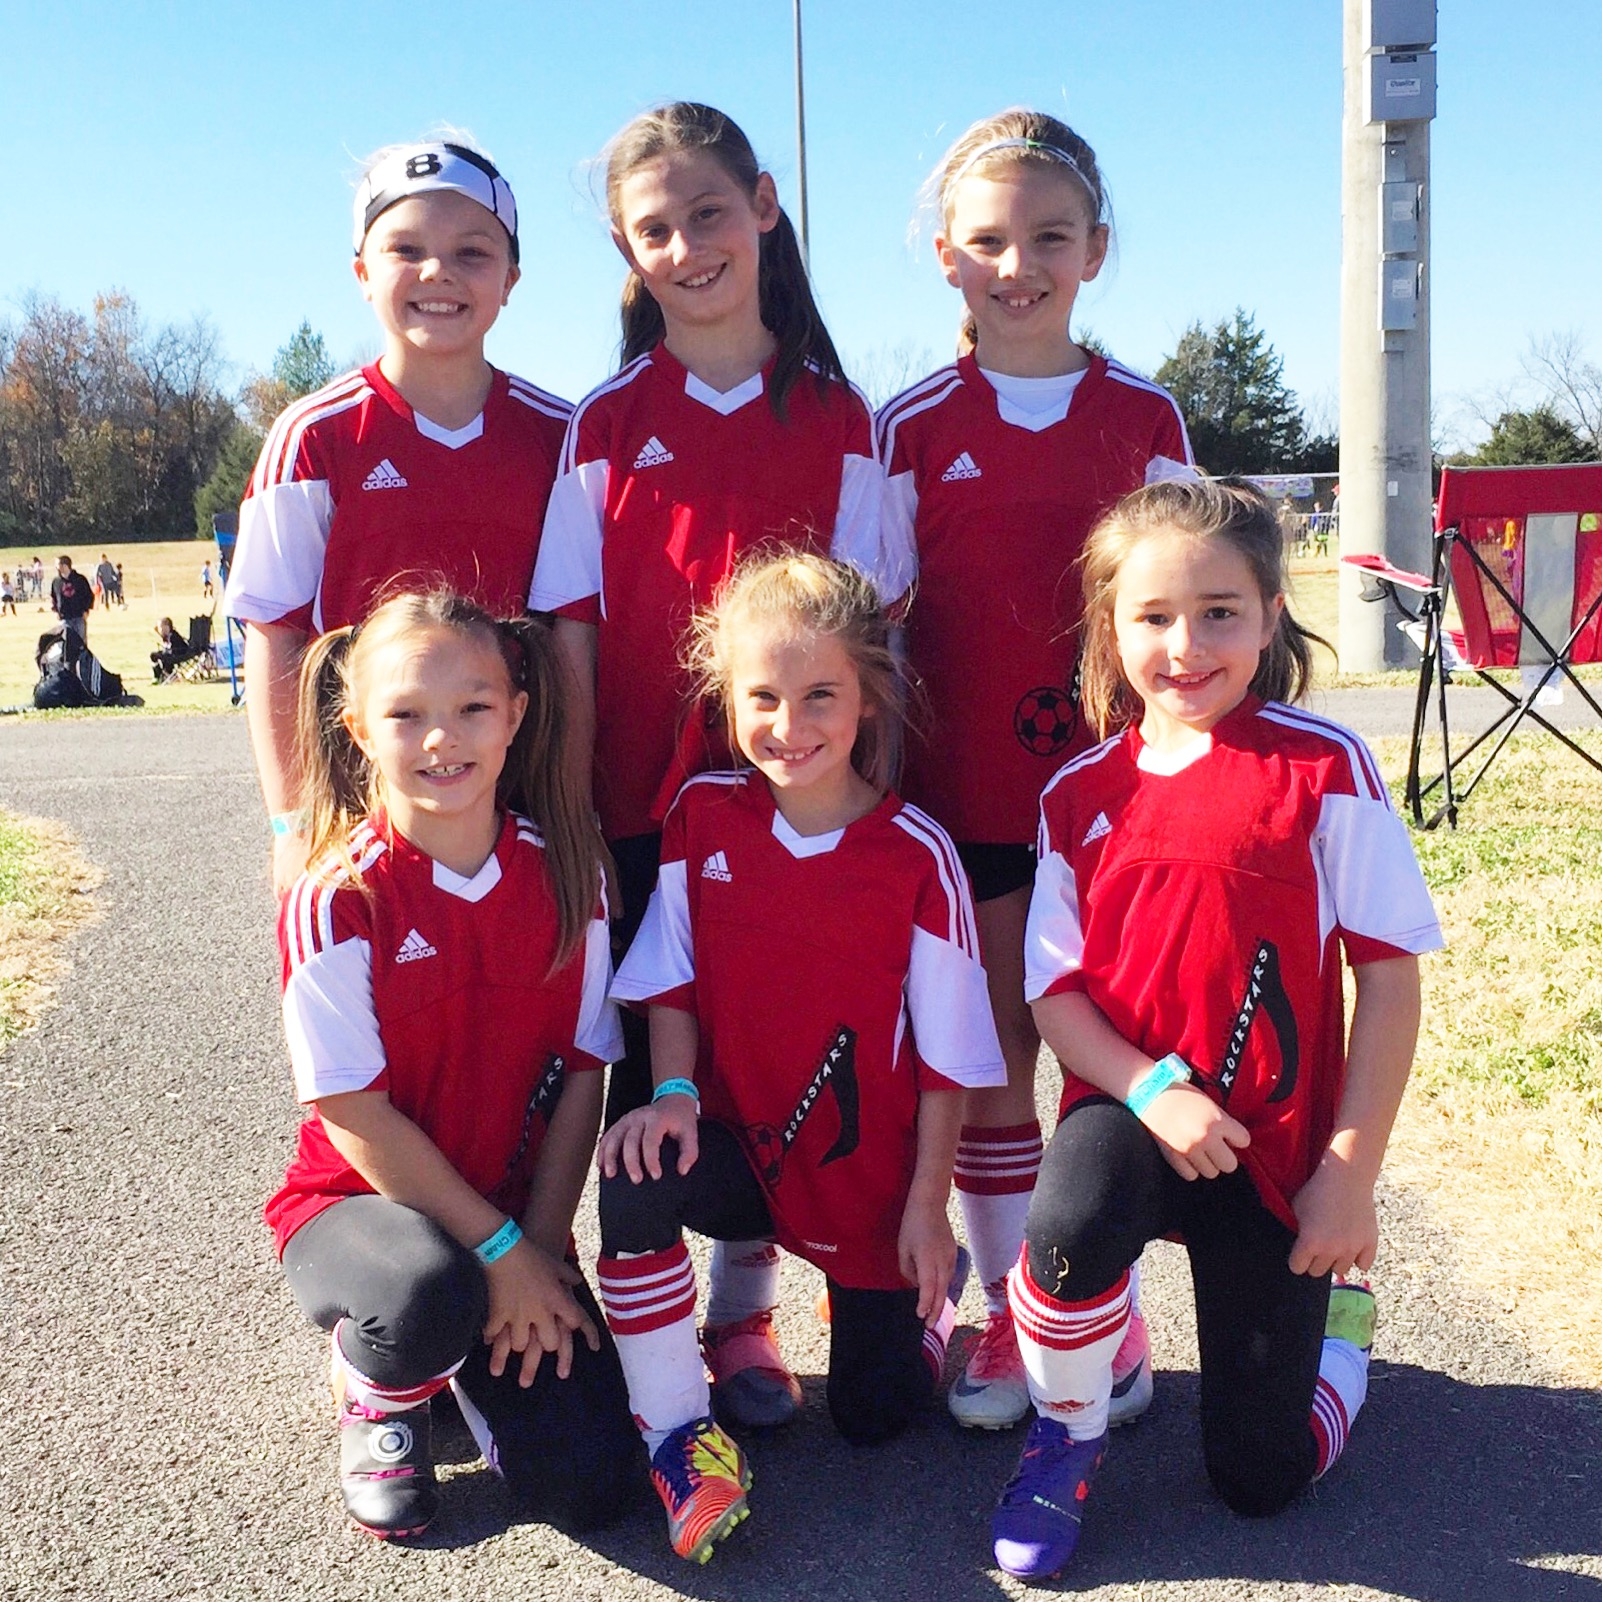 '09 Girls Compete in 3v3 National Championships!